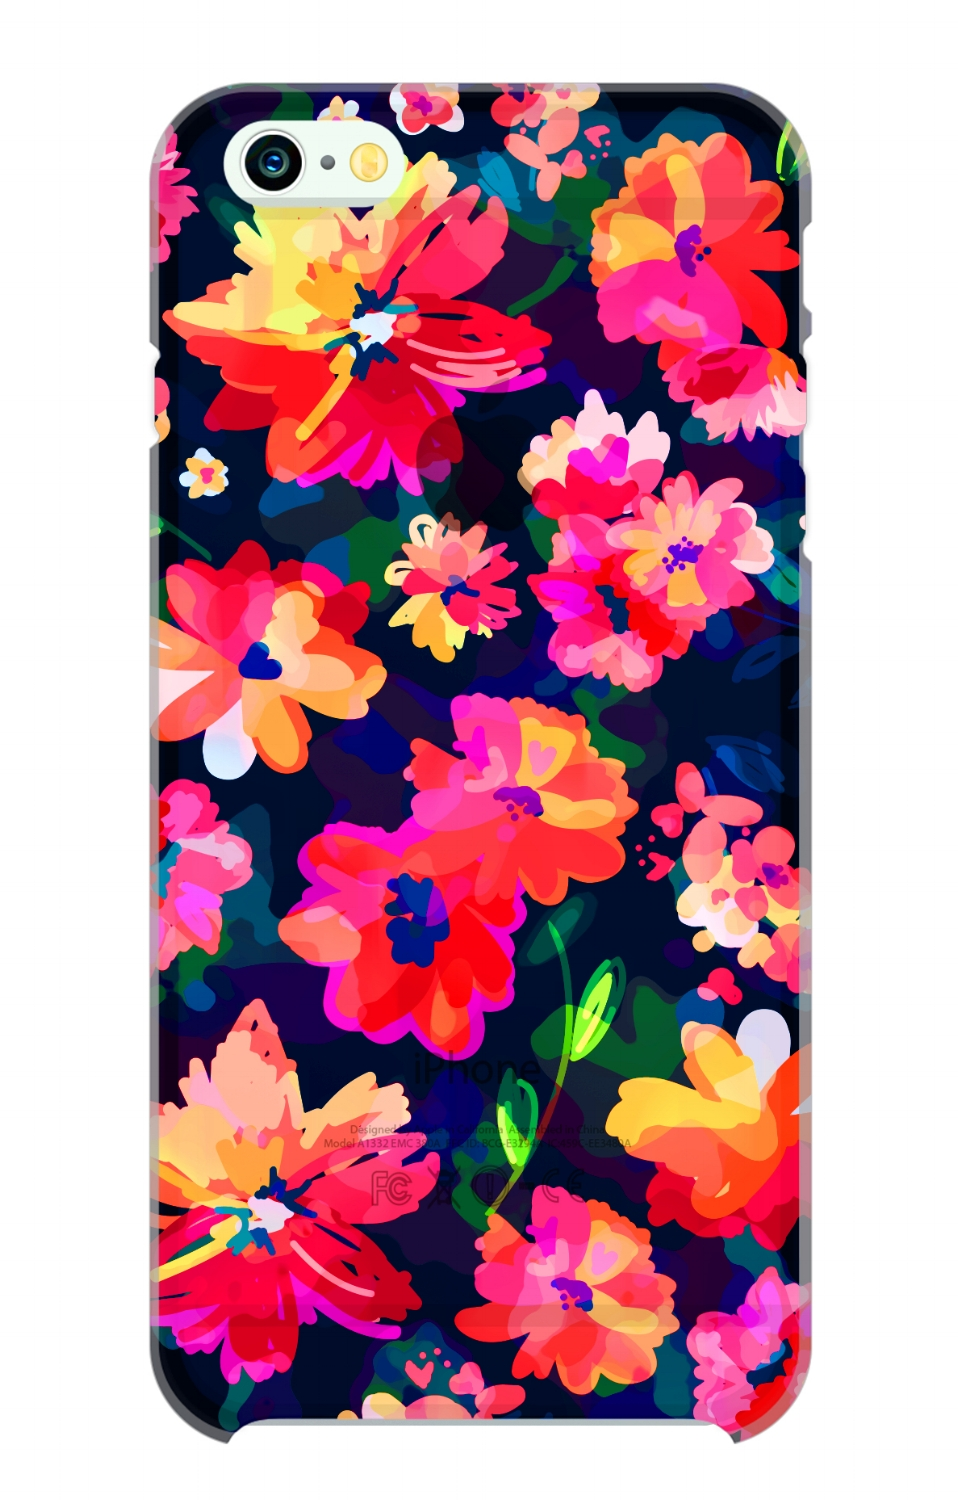 Phone Cases - We can customize your designs on any phone case from iPhone  to Android adb1d9382a11